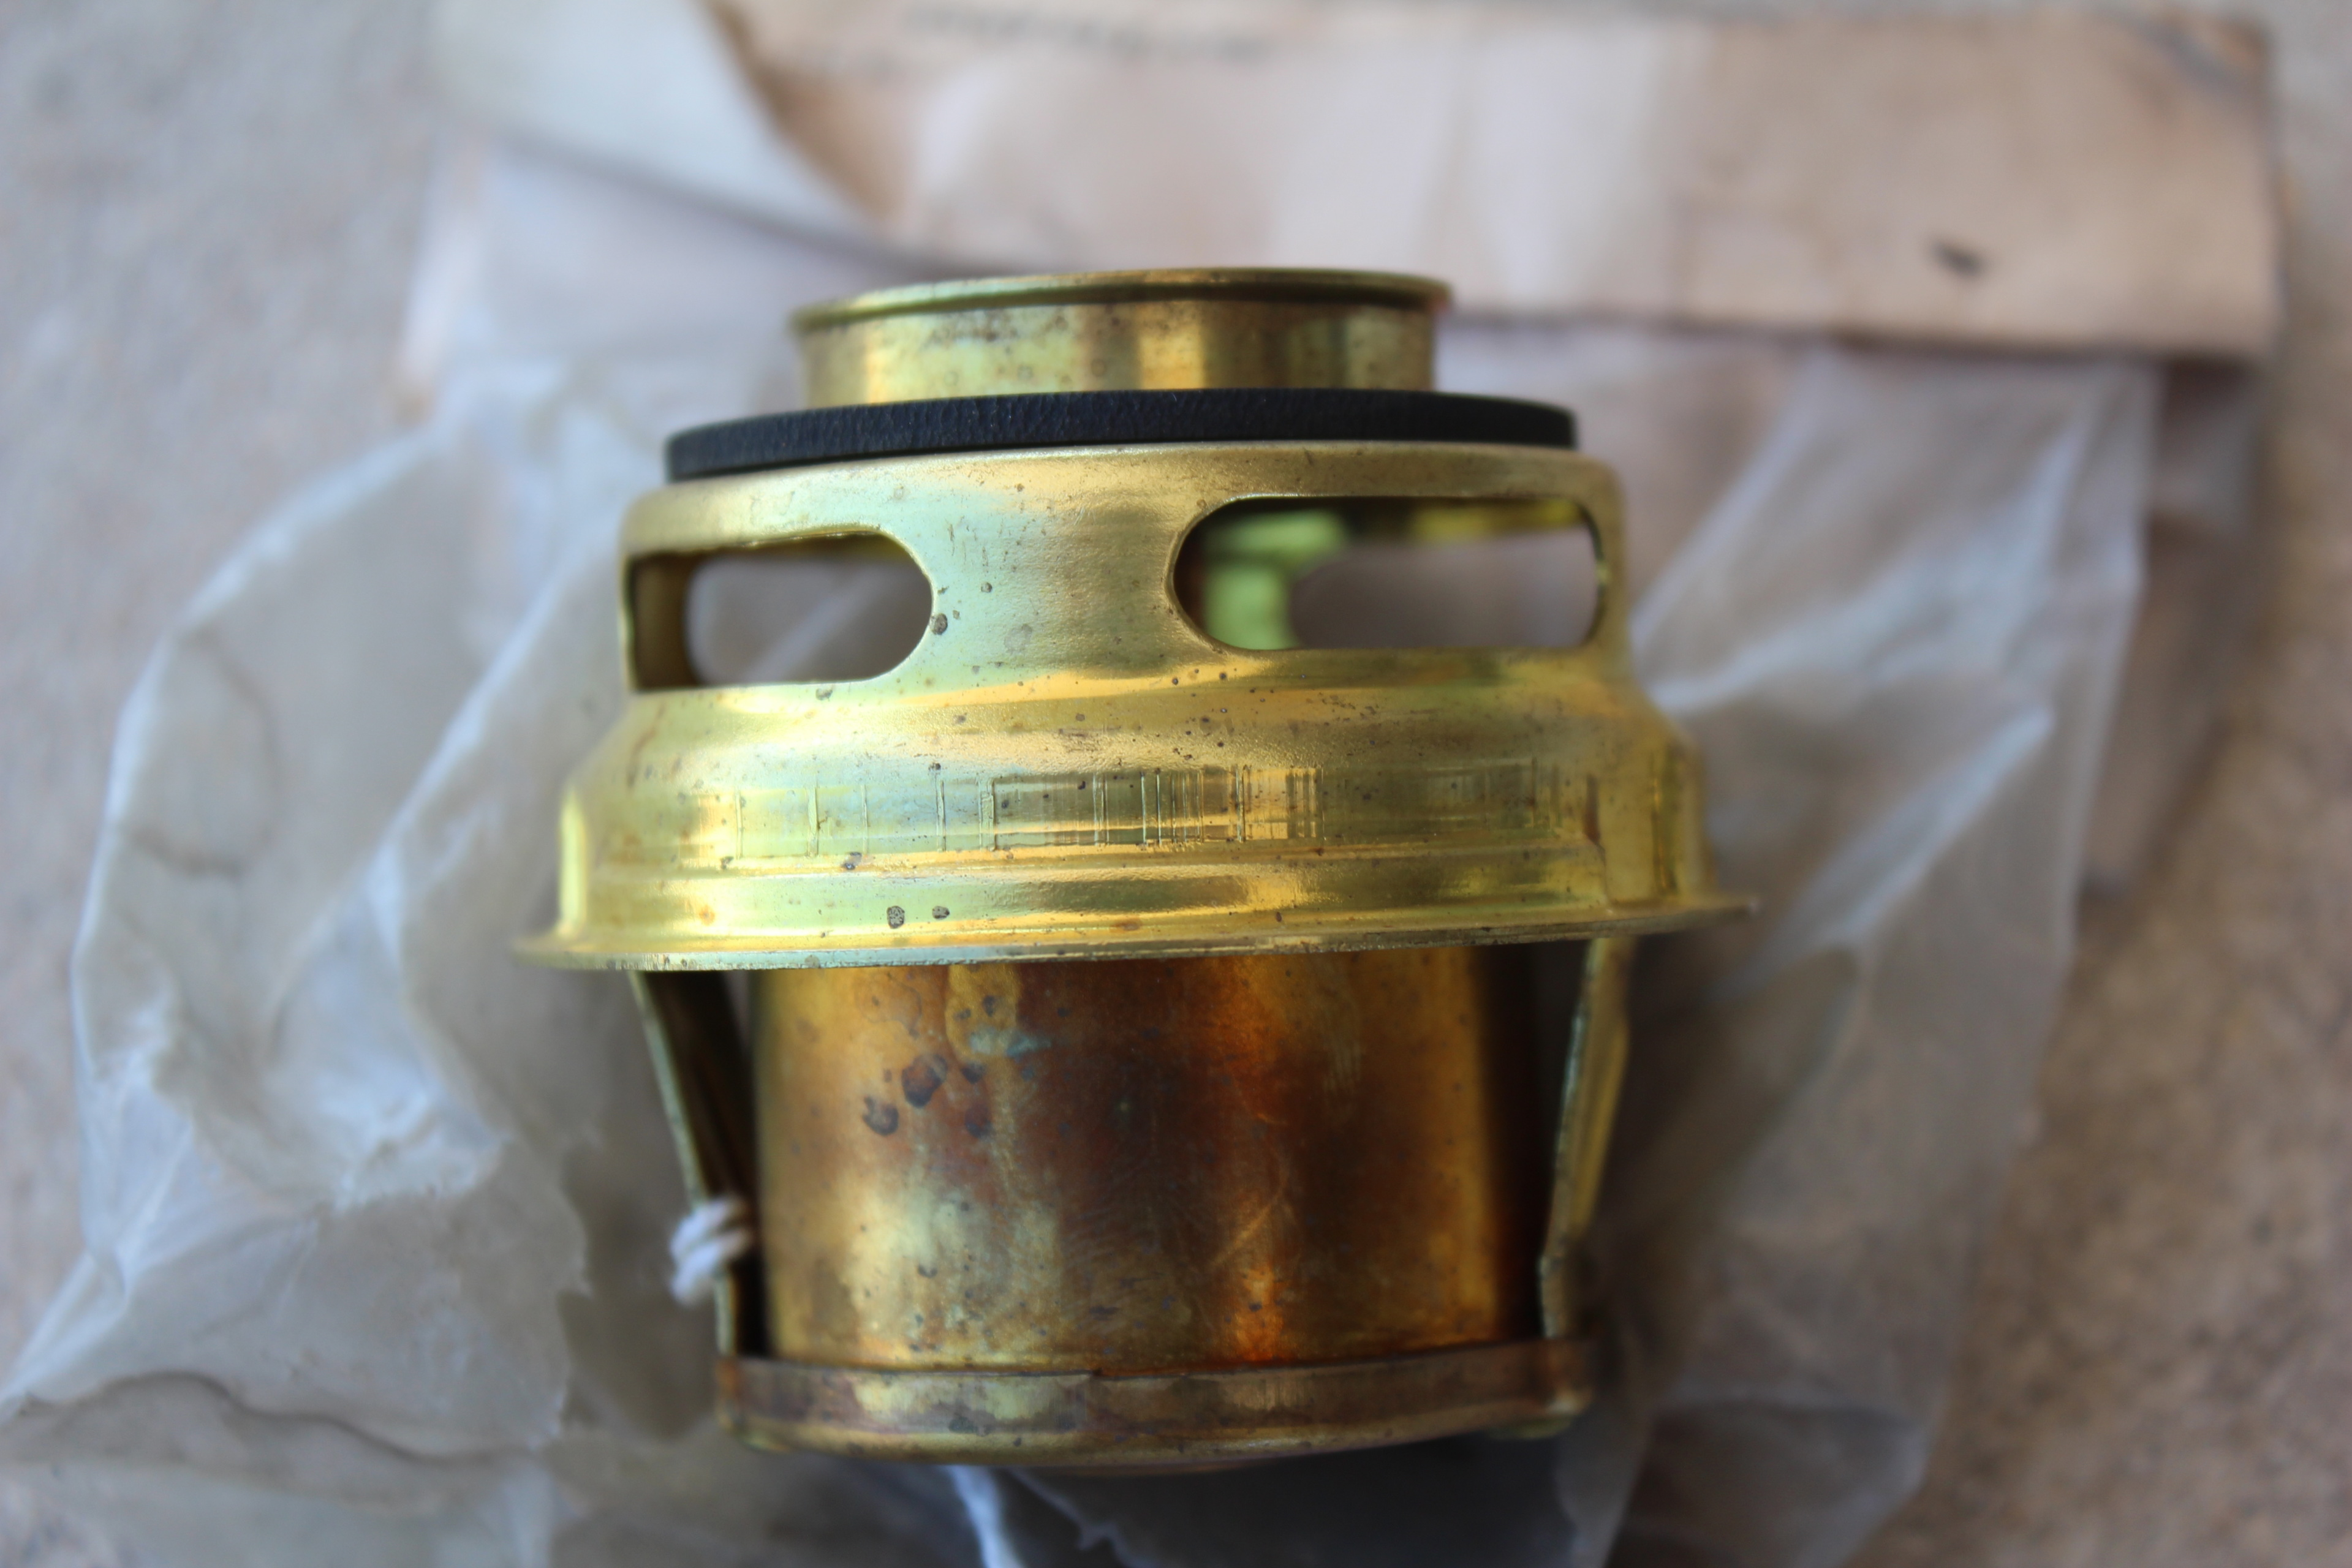 Bellows Type Thermostat